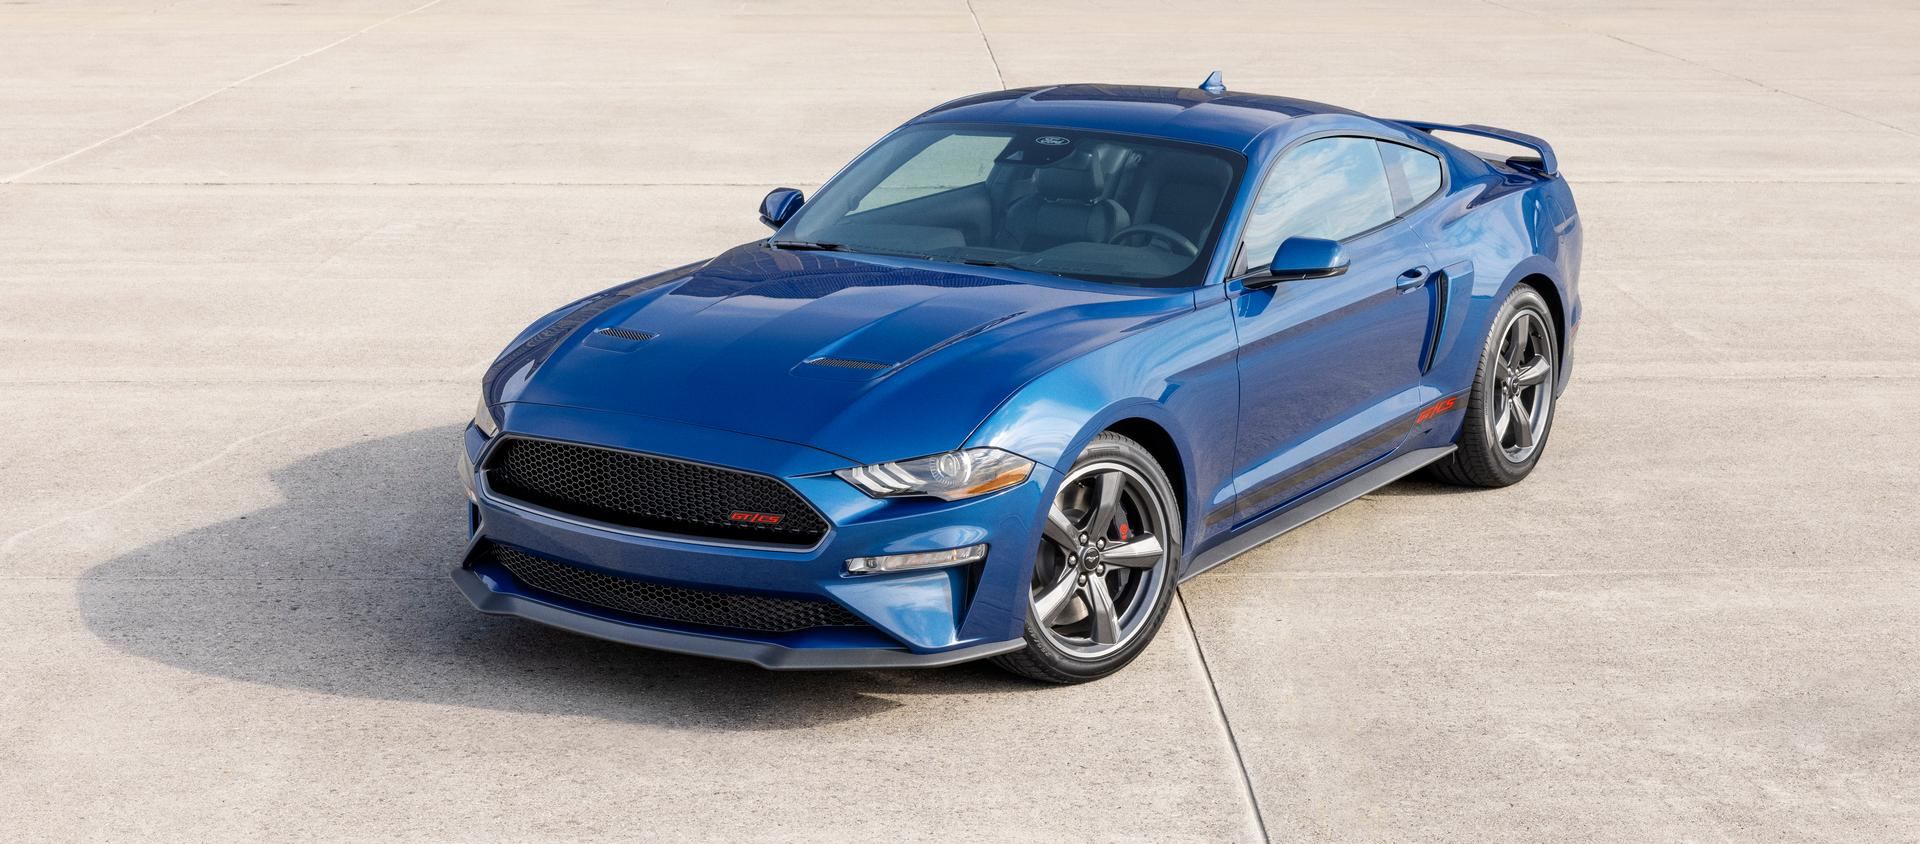 2022 Mustang GT California Special price